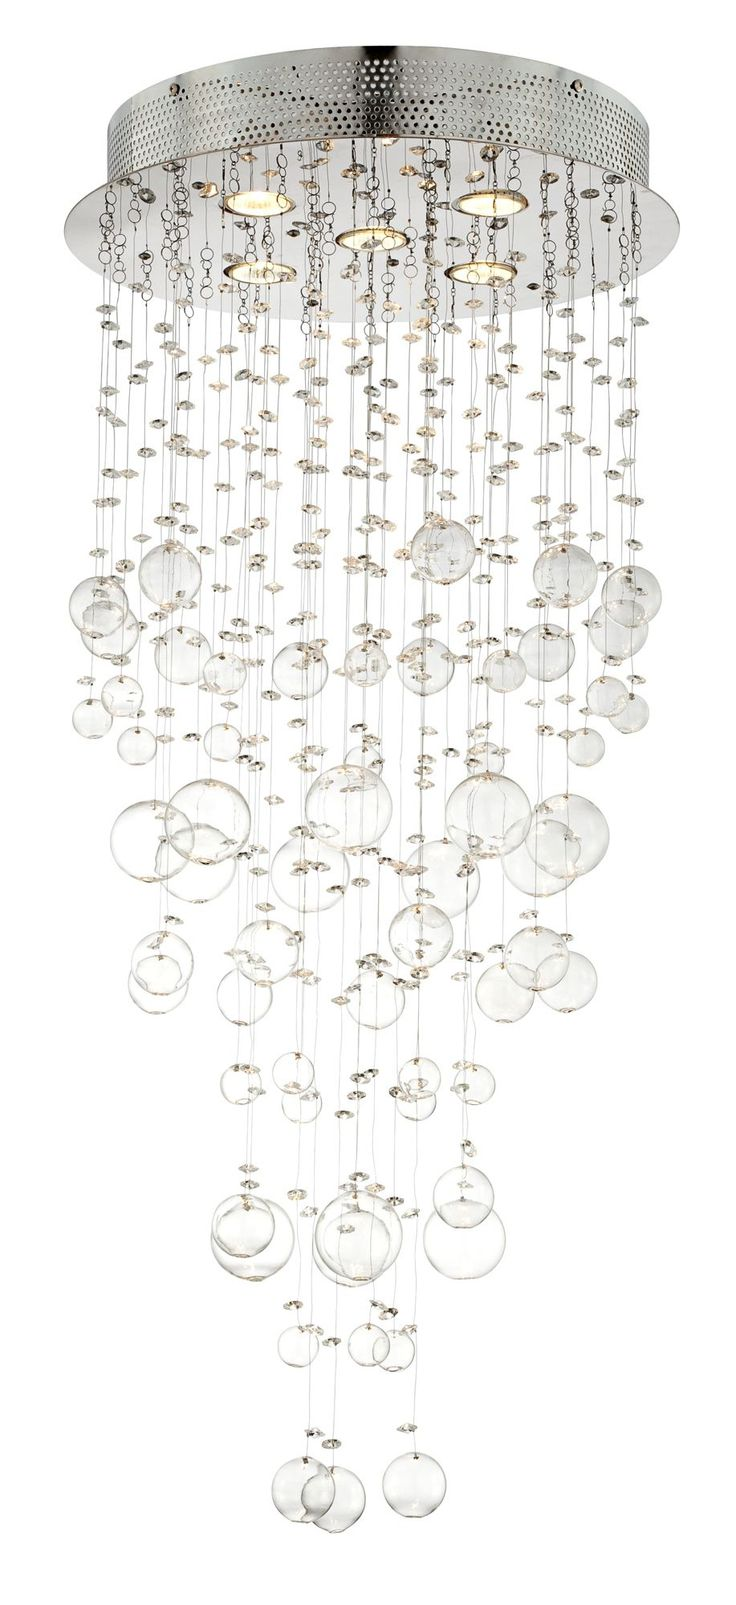 76 best Lighting images on Pinterest   Euro, Chandeliers and ...